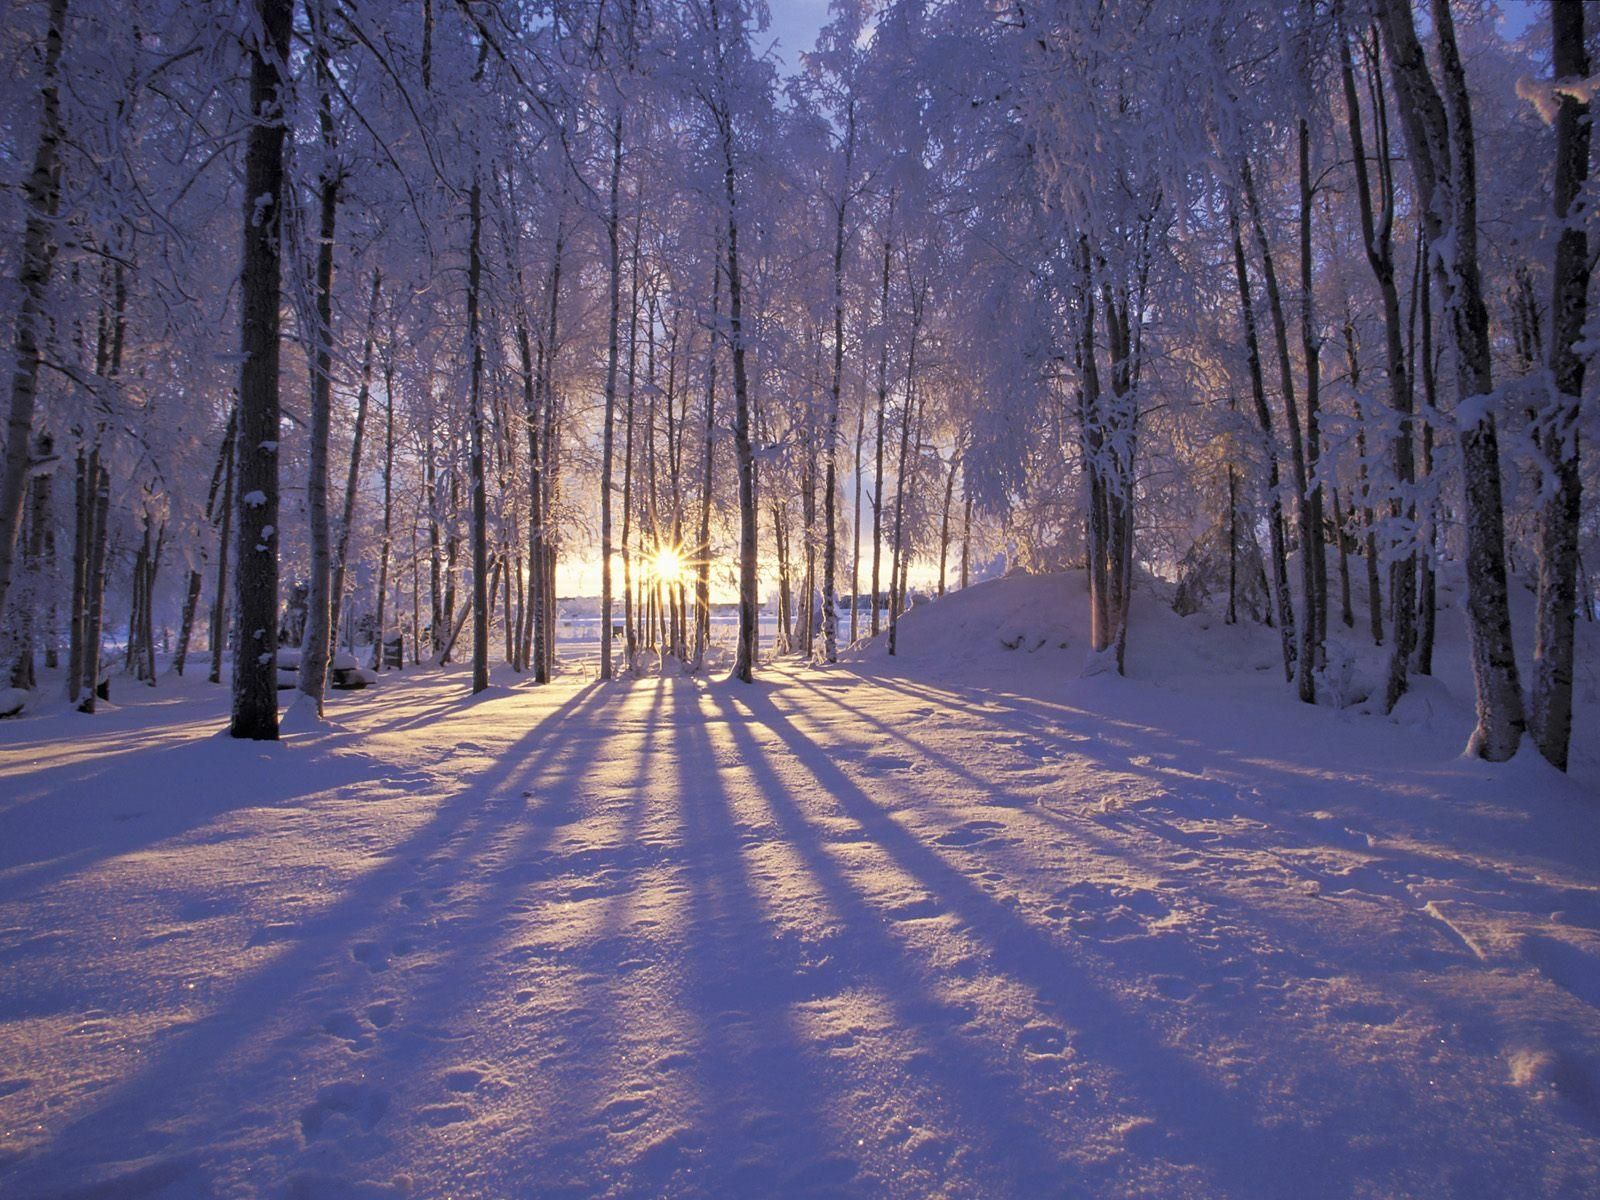 Winter Wallpapers HD Desktop Backgrounds Images and Pictures 1600x1200